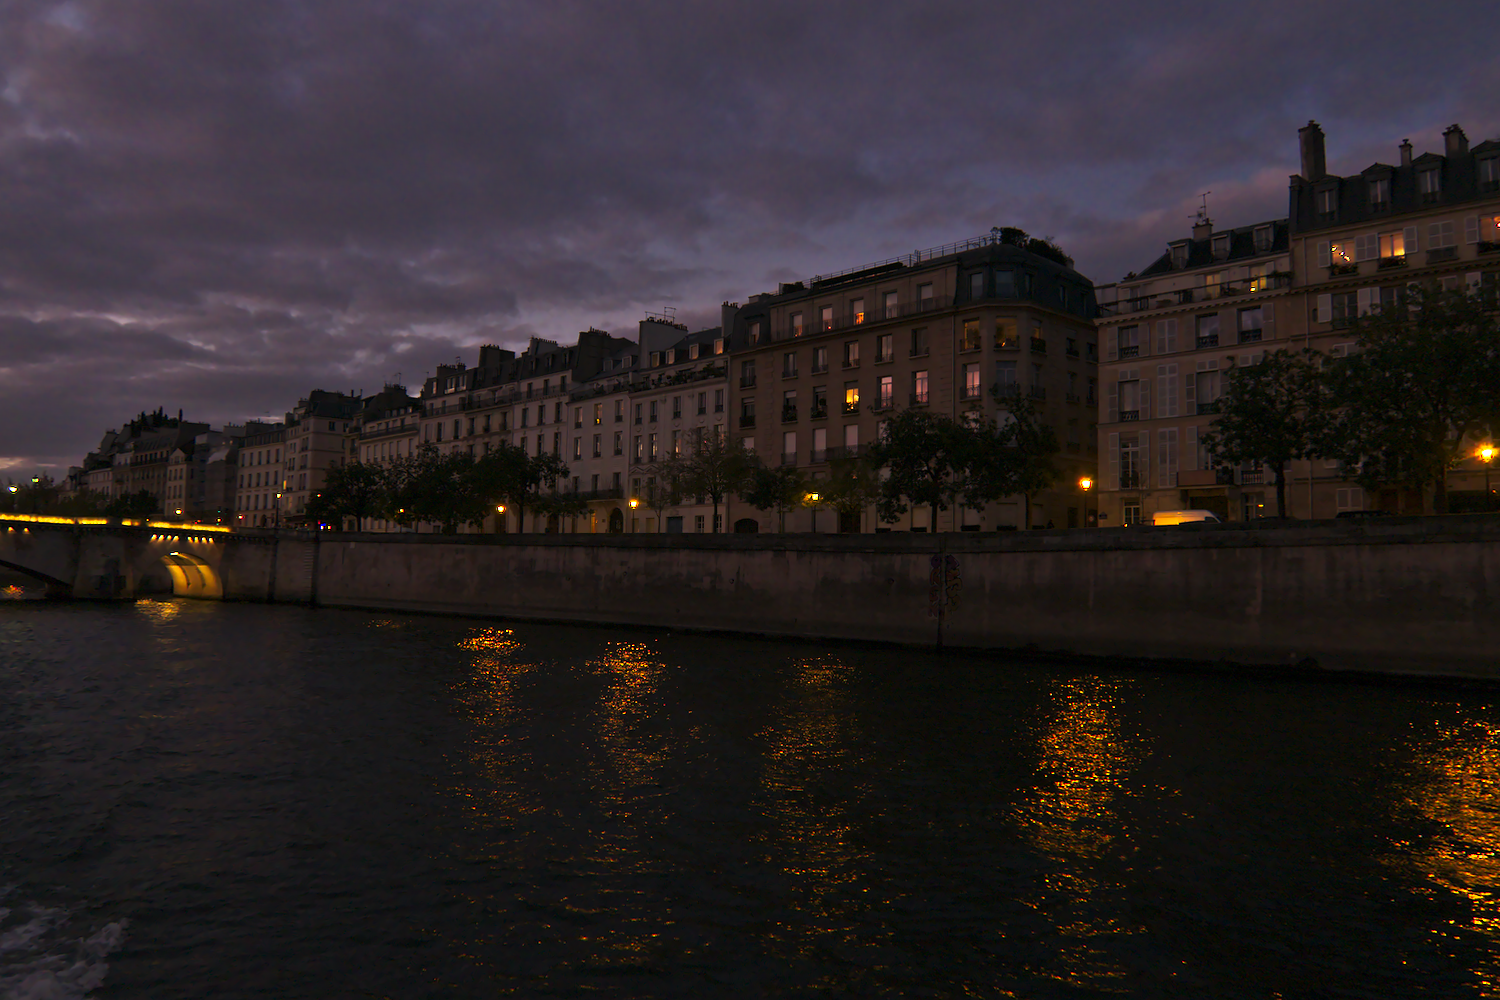 Paris from the river at night